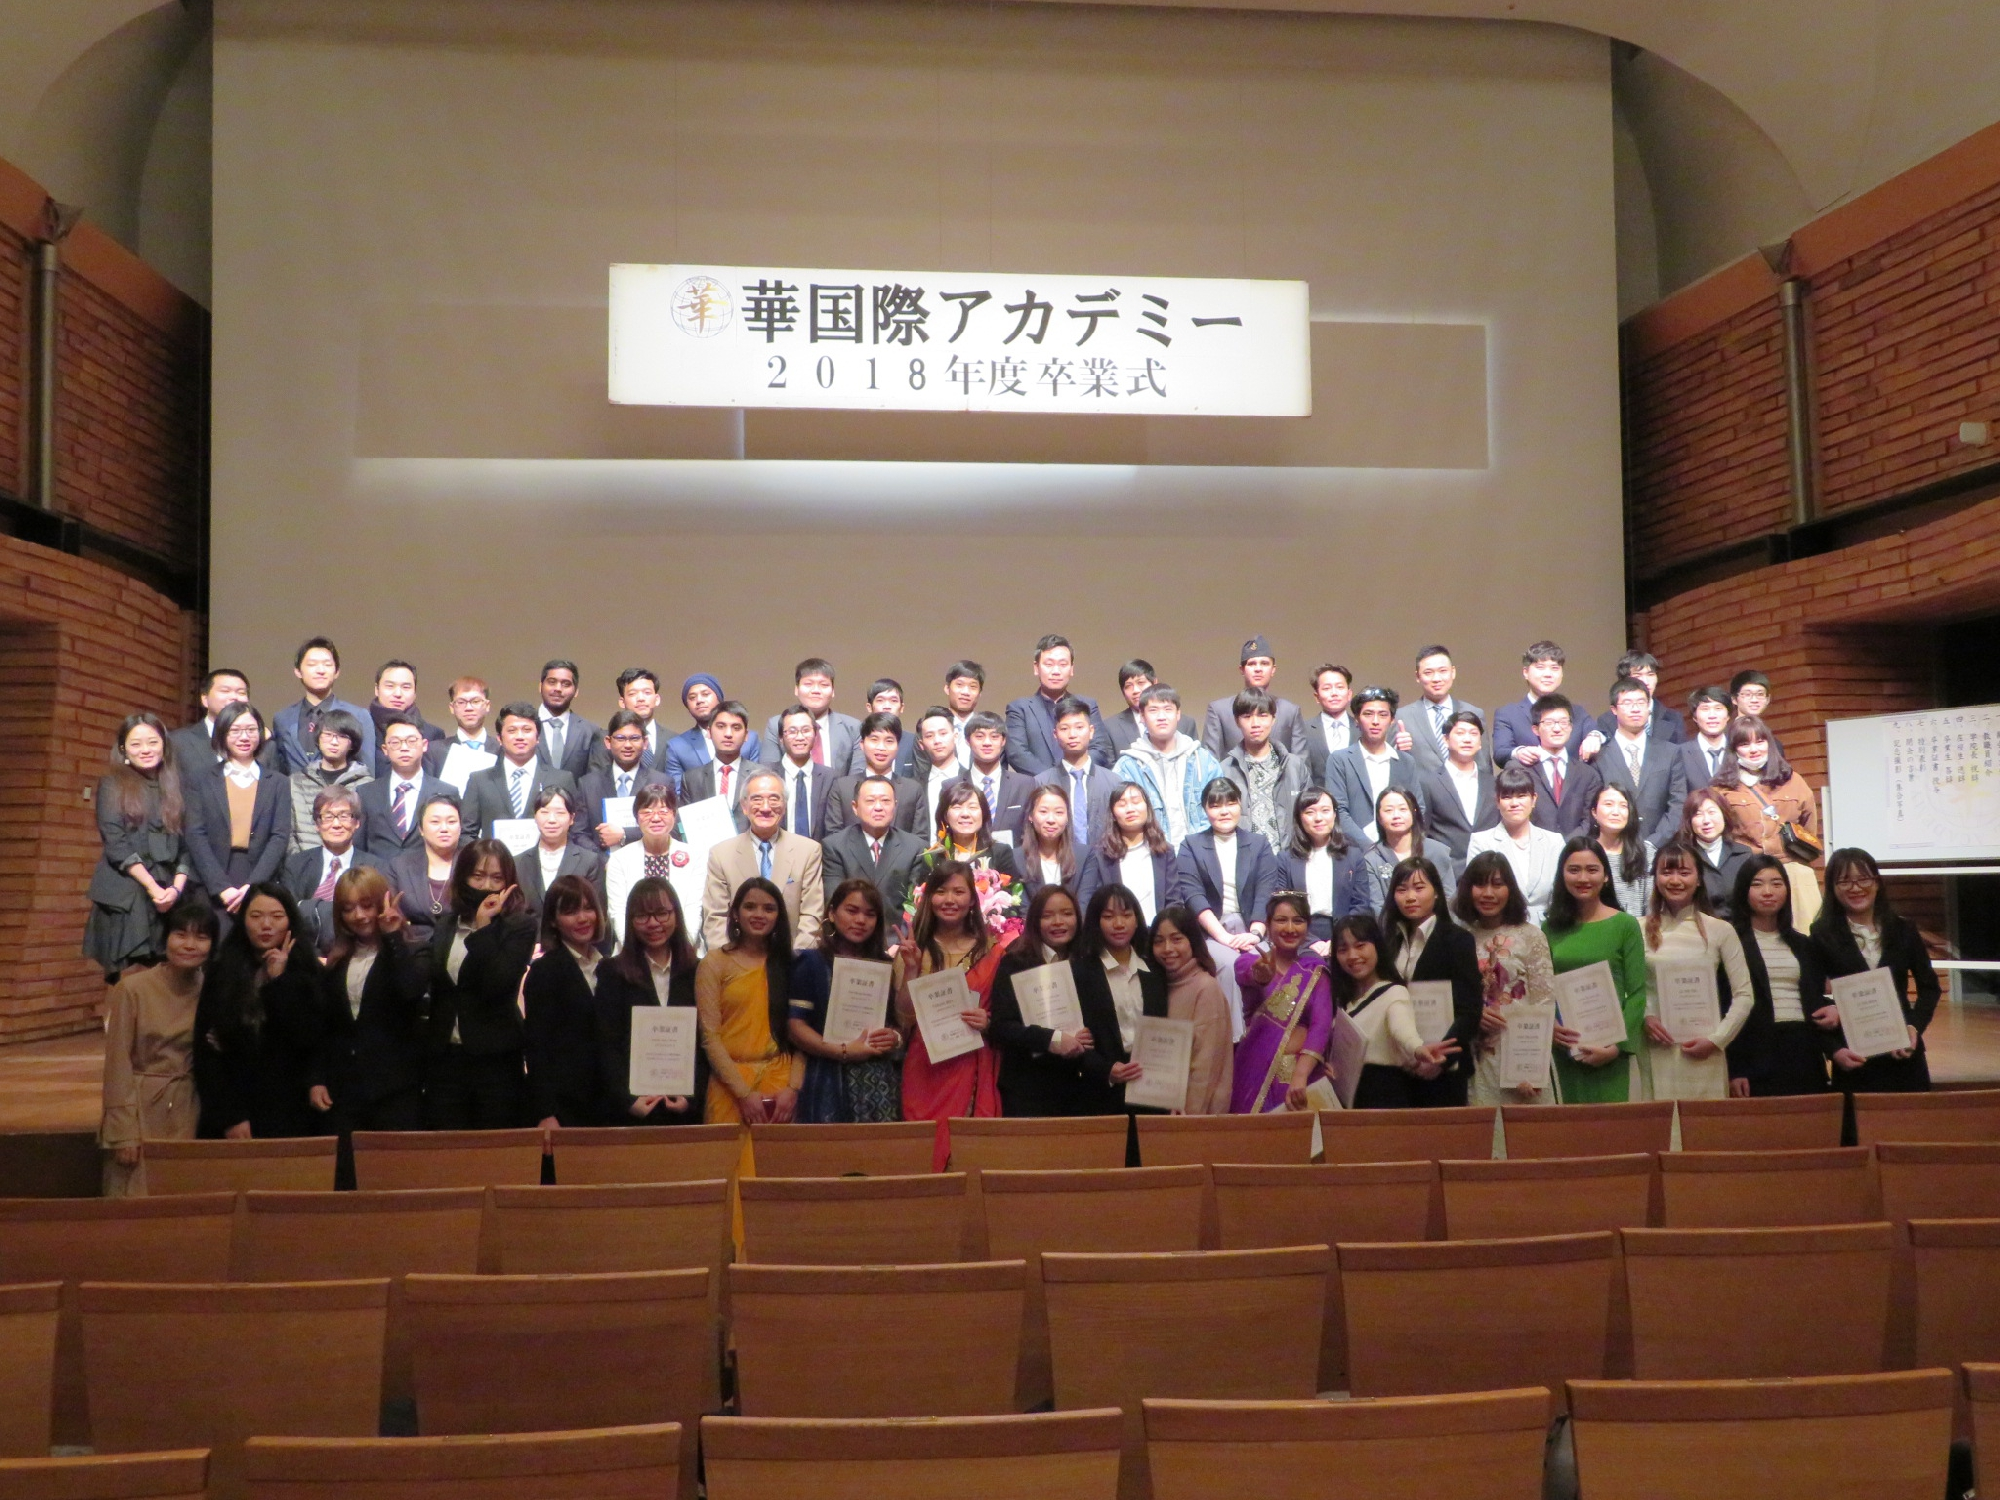 2019/3  2018年度卒業式を行いました The graduation ceremony for the 2018 students